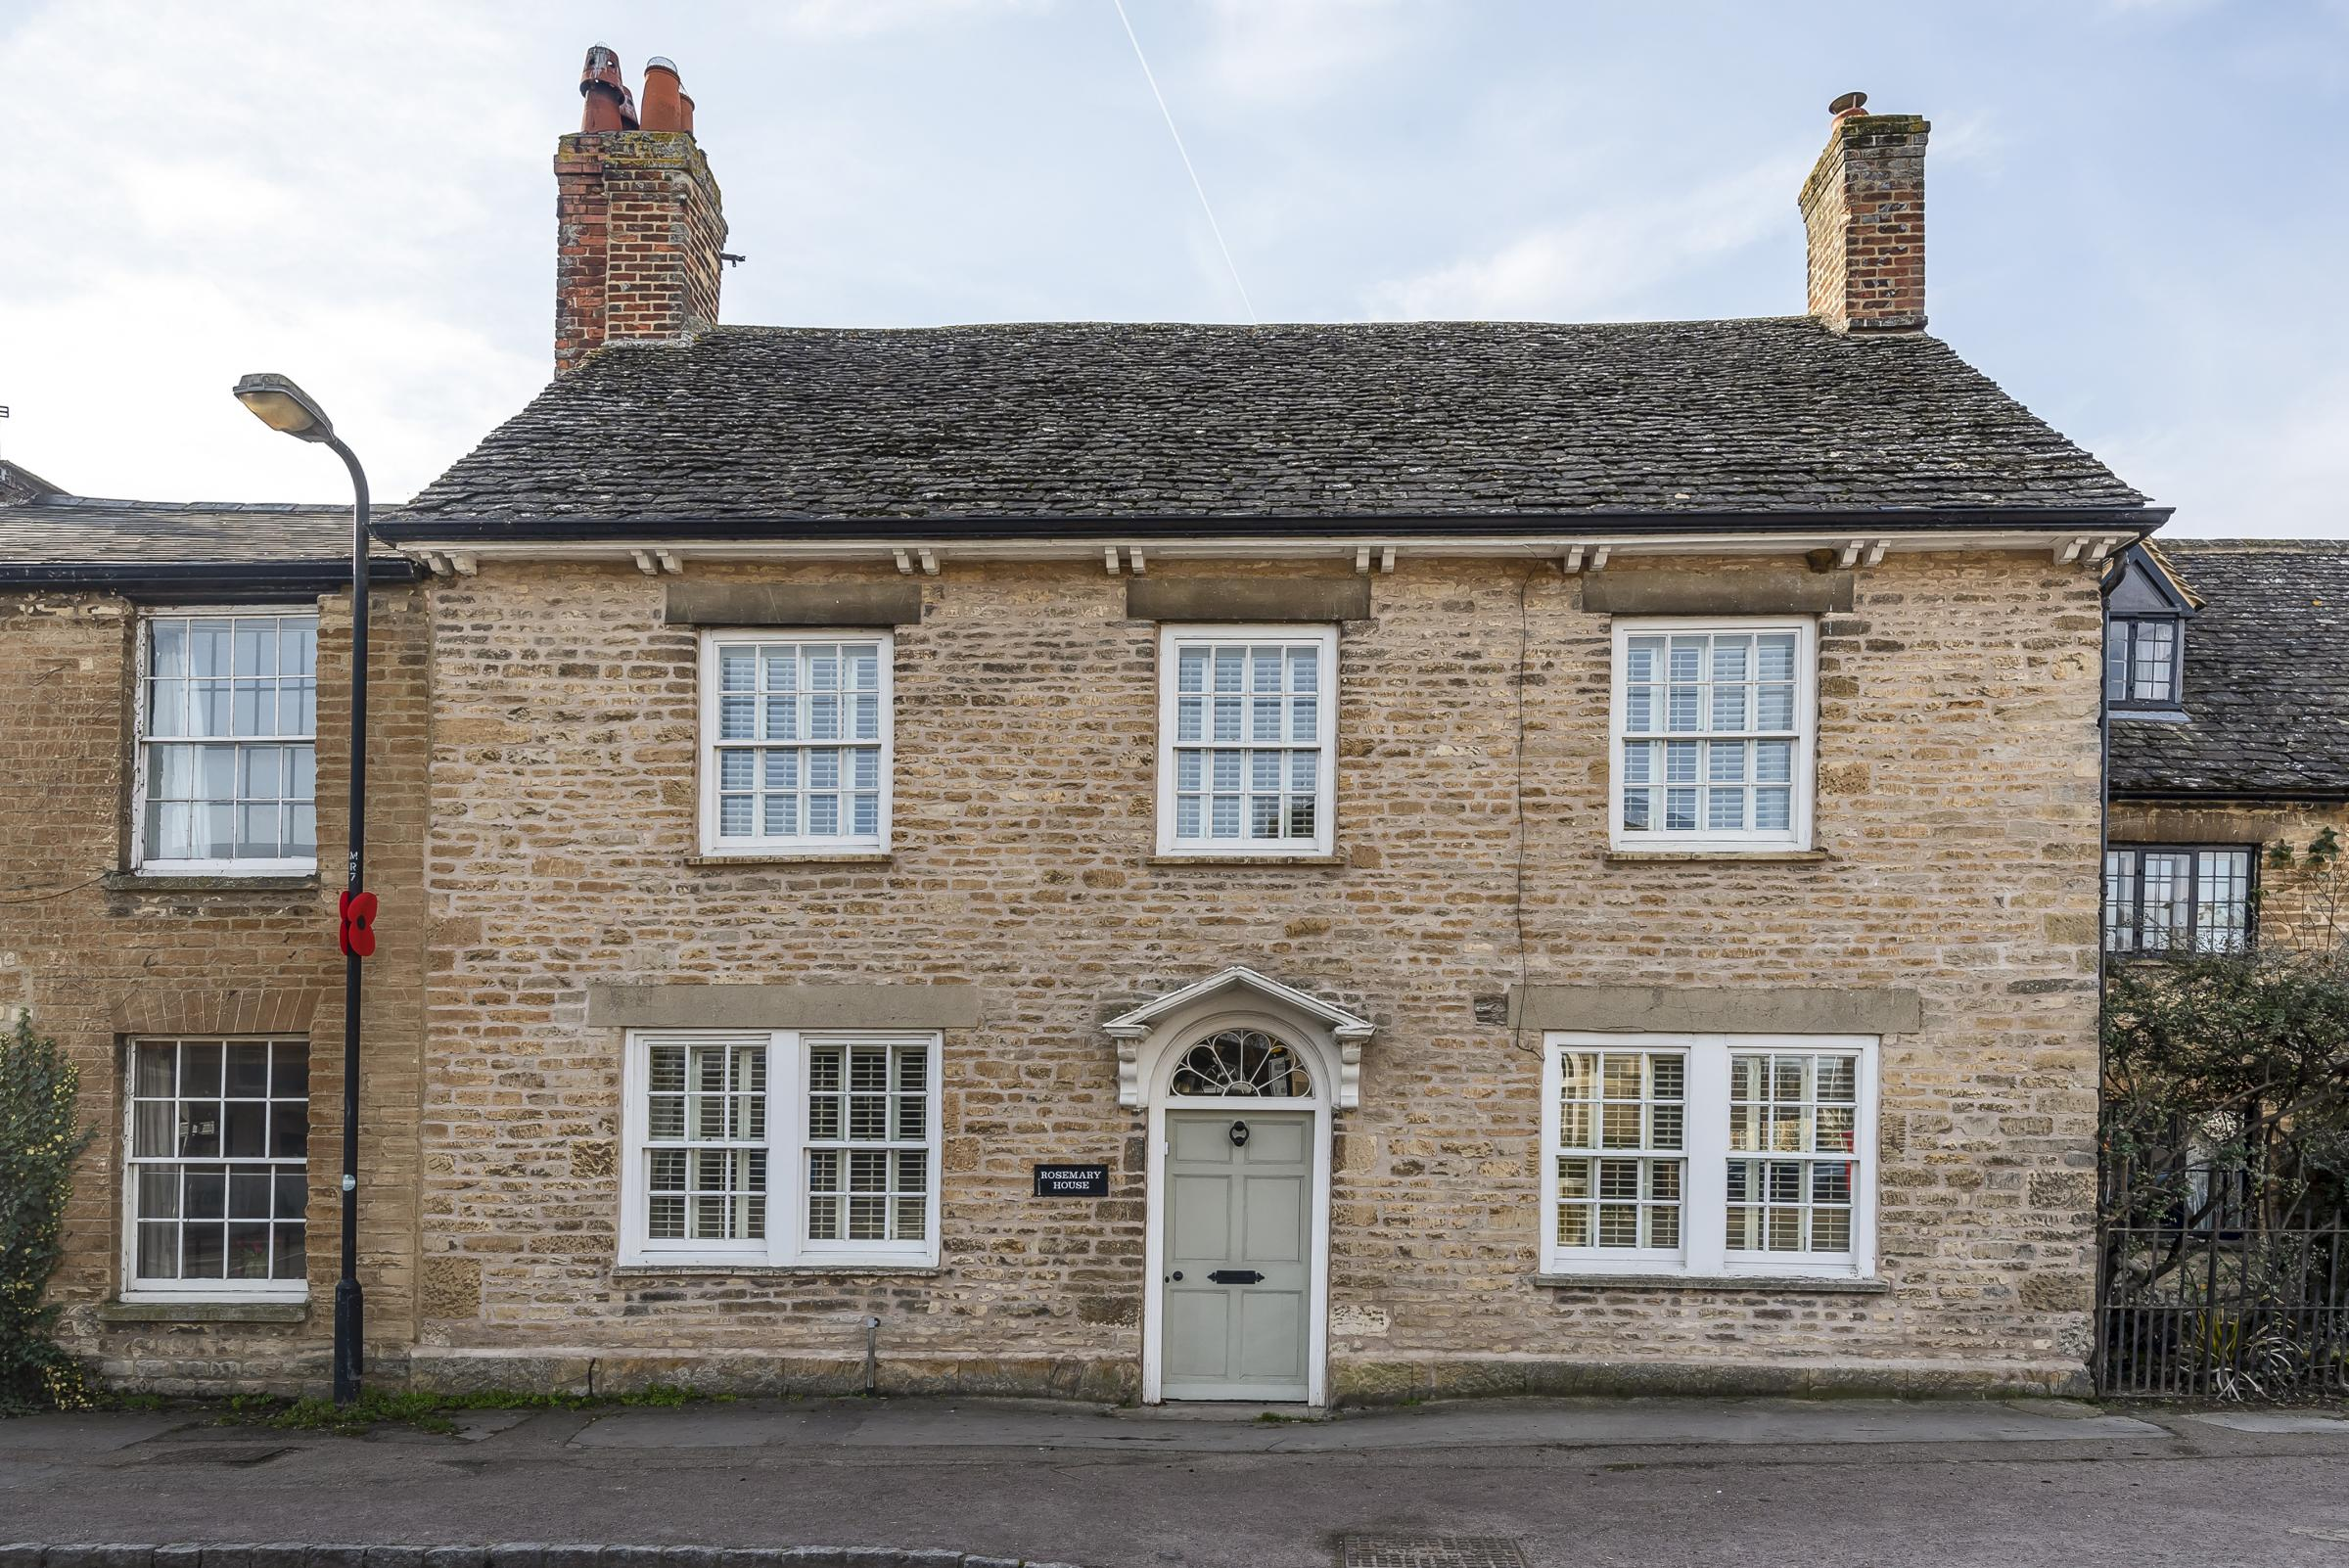 Pictures: Inside the next-door houses for sale in Downton Abbey village